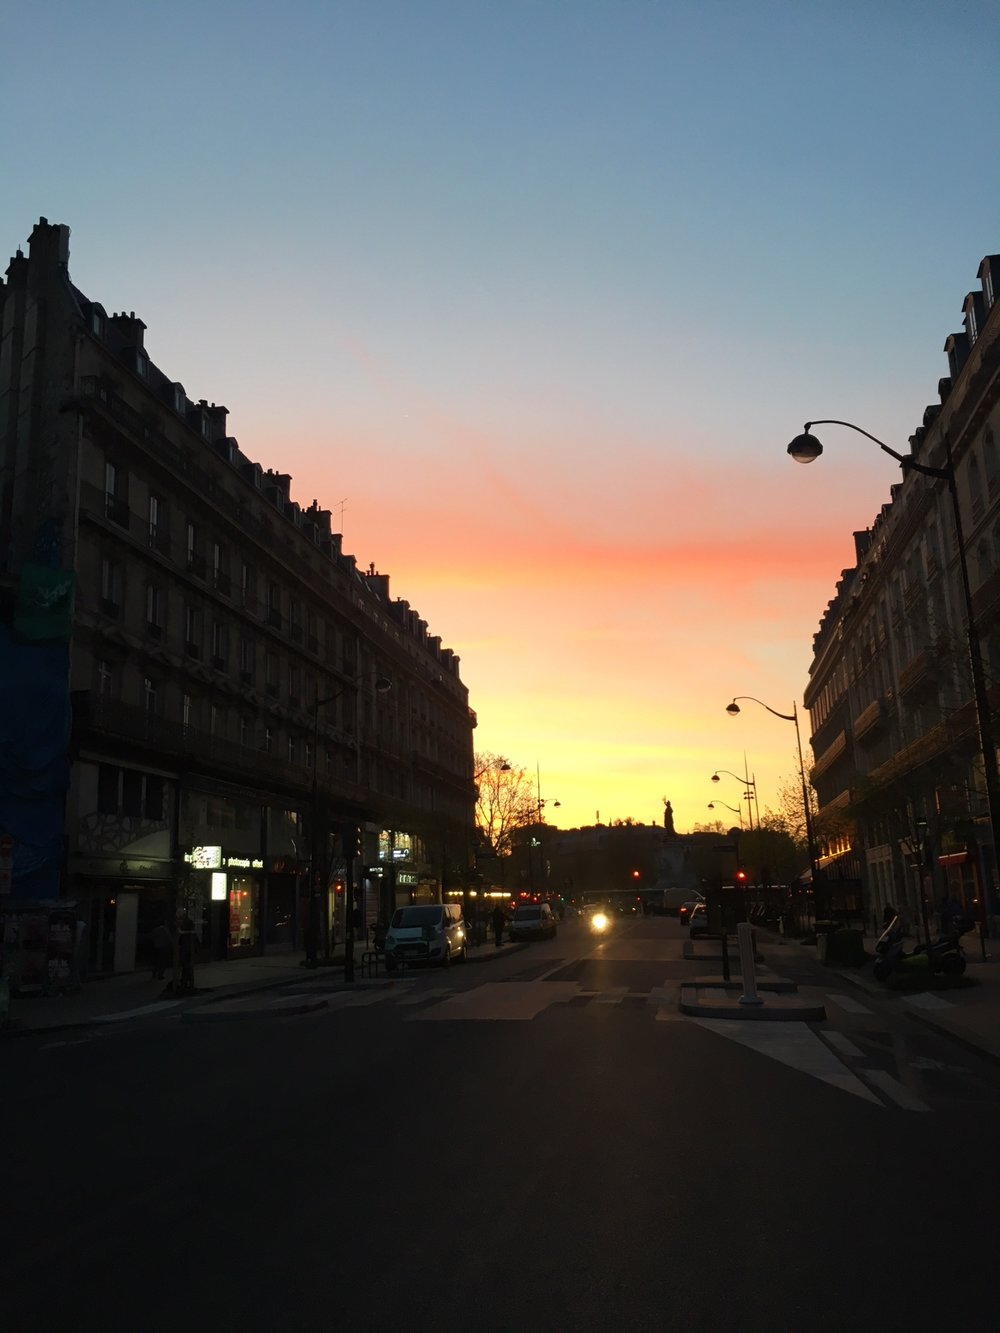 sunset in paris france